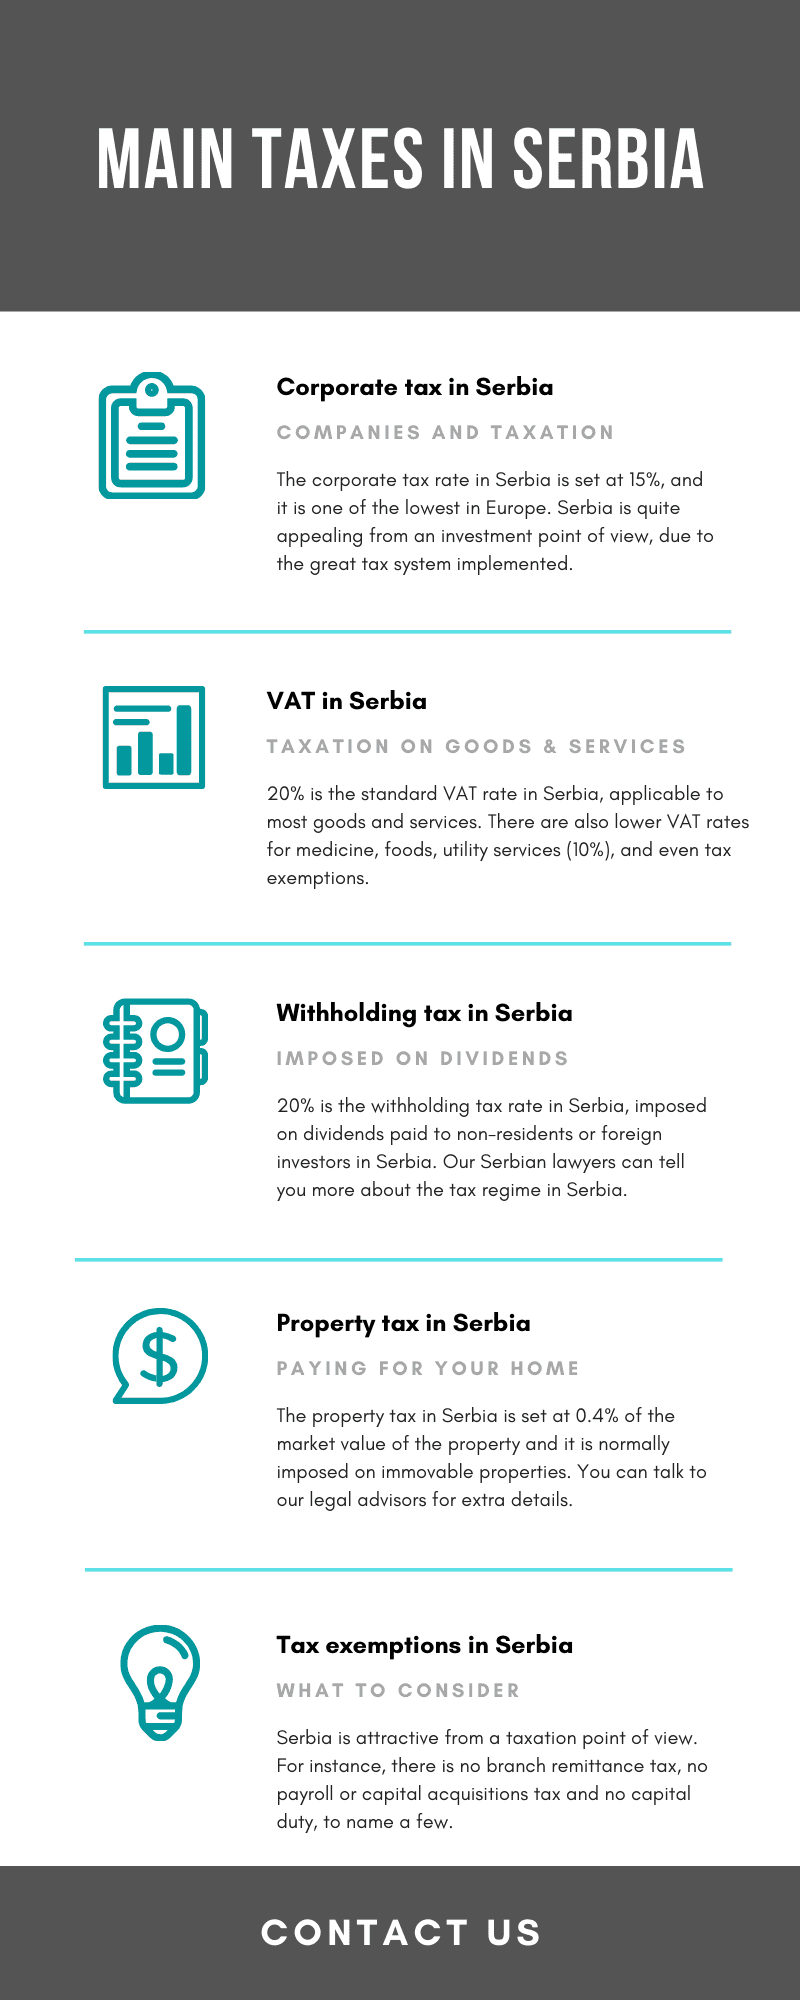 Main taxes in Serbia1.png